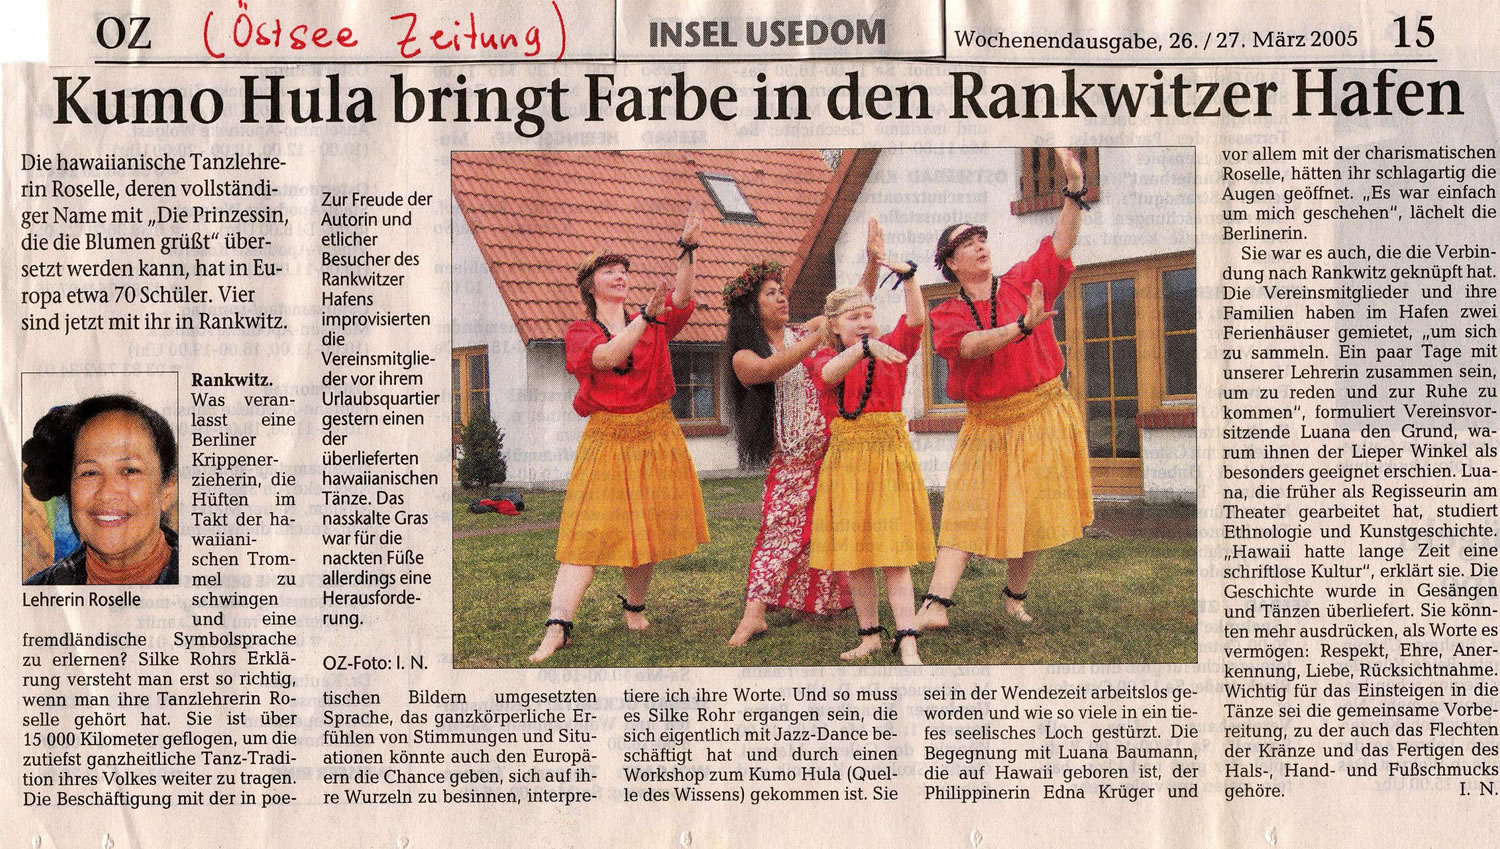 Article from Oestee Newspaper in Northern Germany